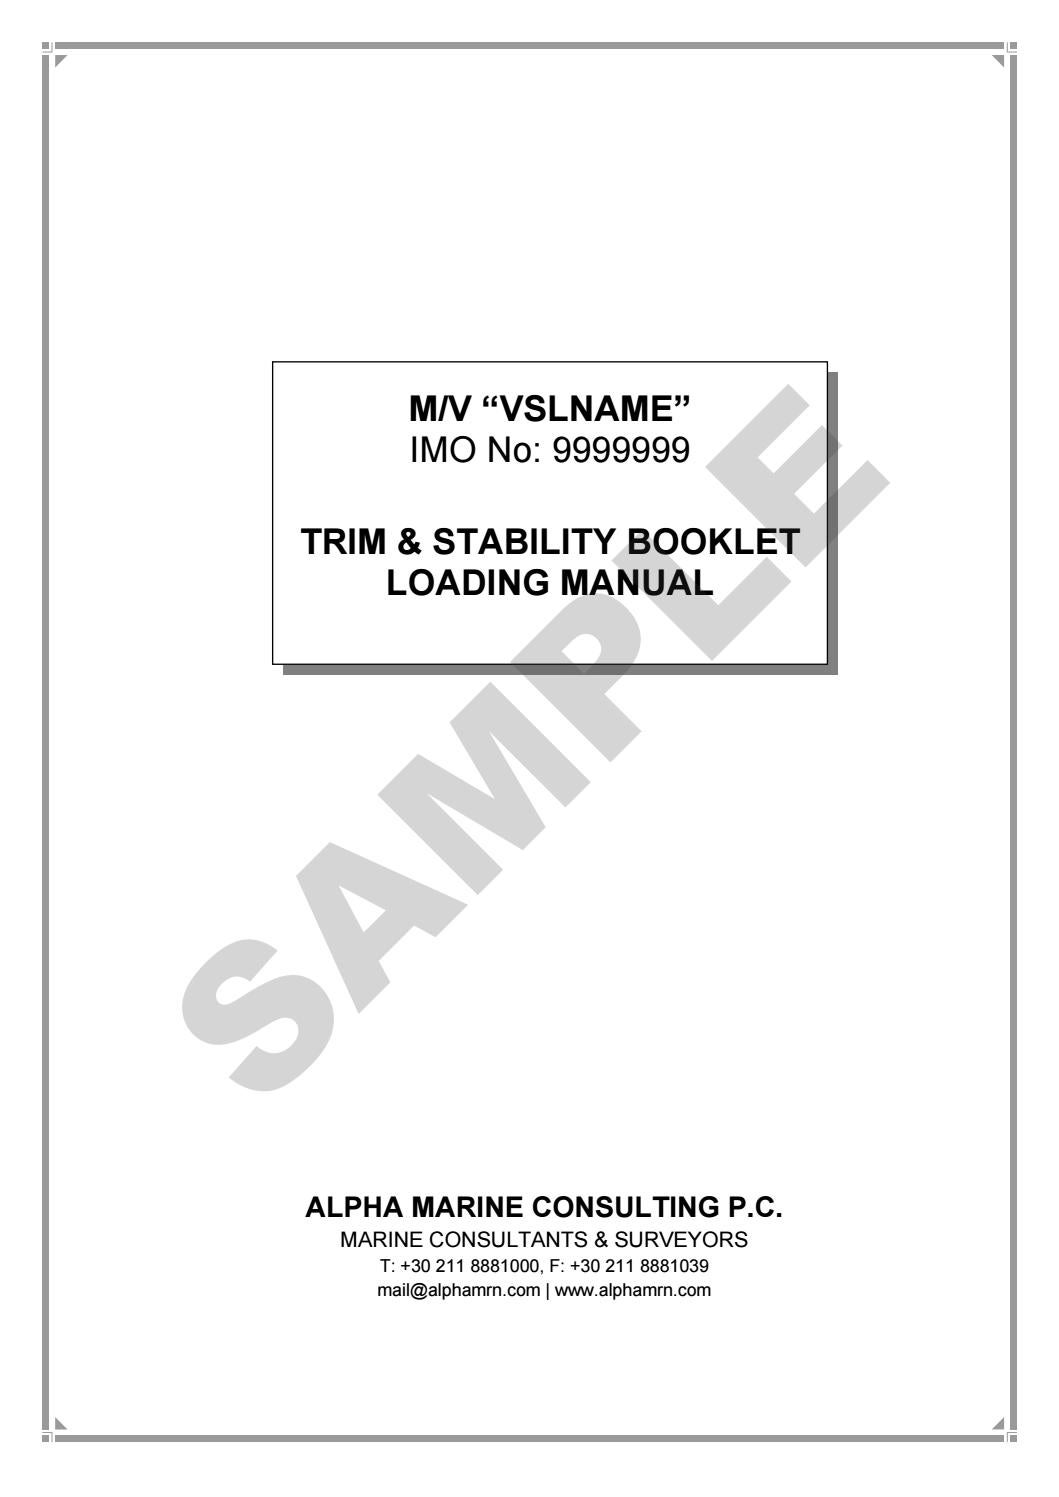 TRIM & STABILITY BOOKLET - LOADING MANUAL SAMPLE by Alpha